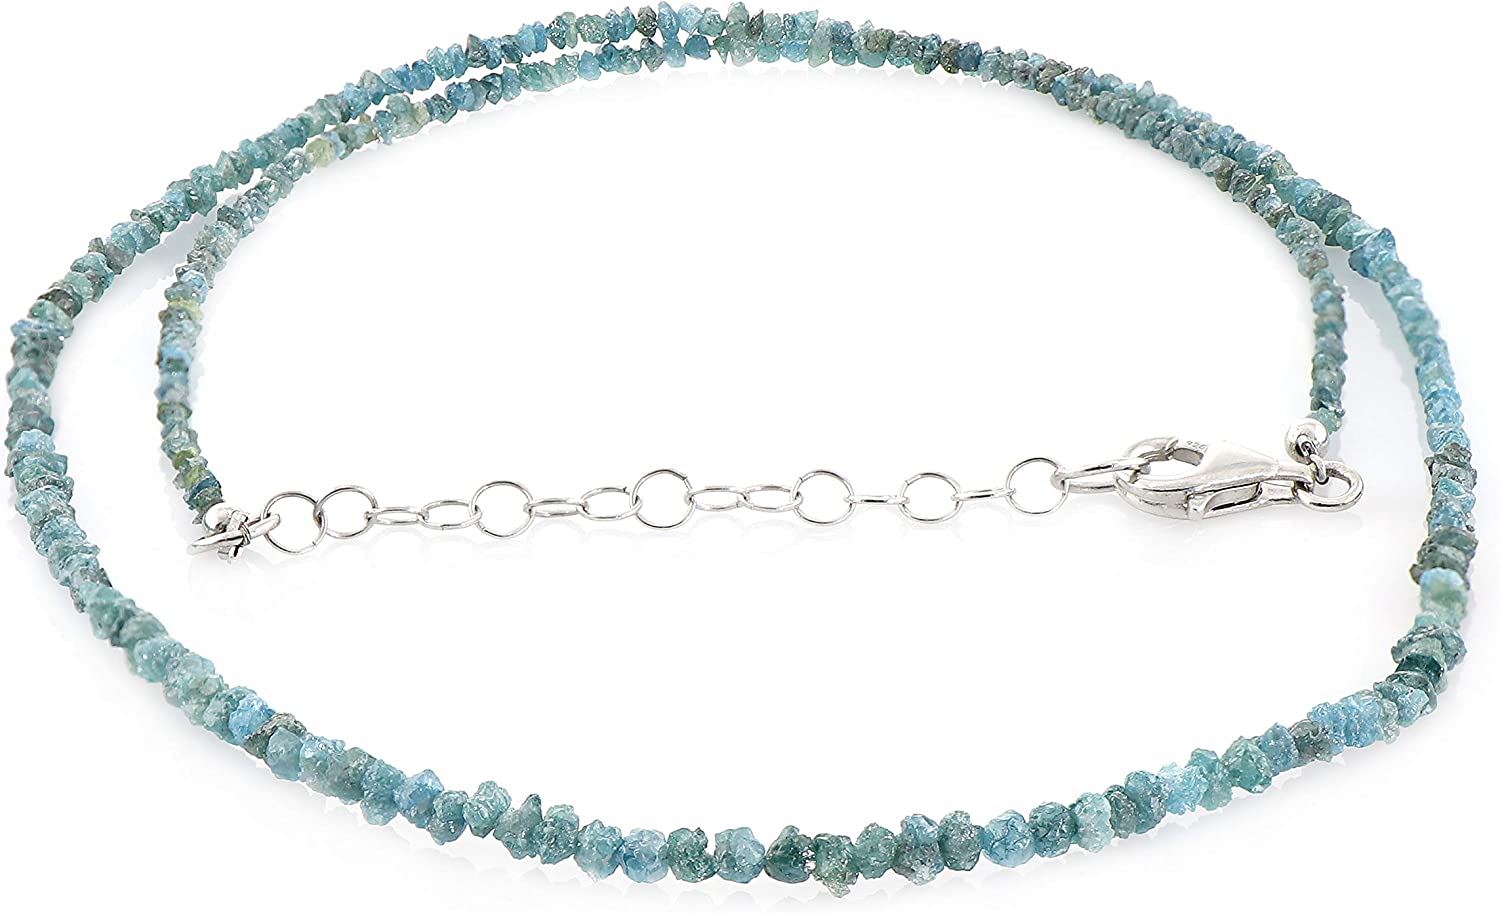 Natural Blue Kyanite Necklace and Bracelet Combo of Plain Oval Beads with Lobster Claw Closer and extender.